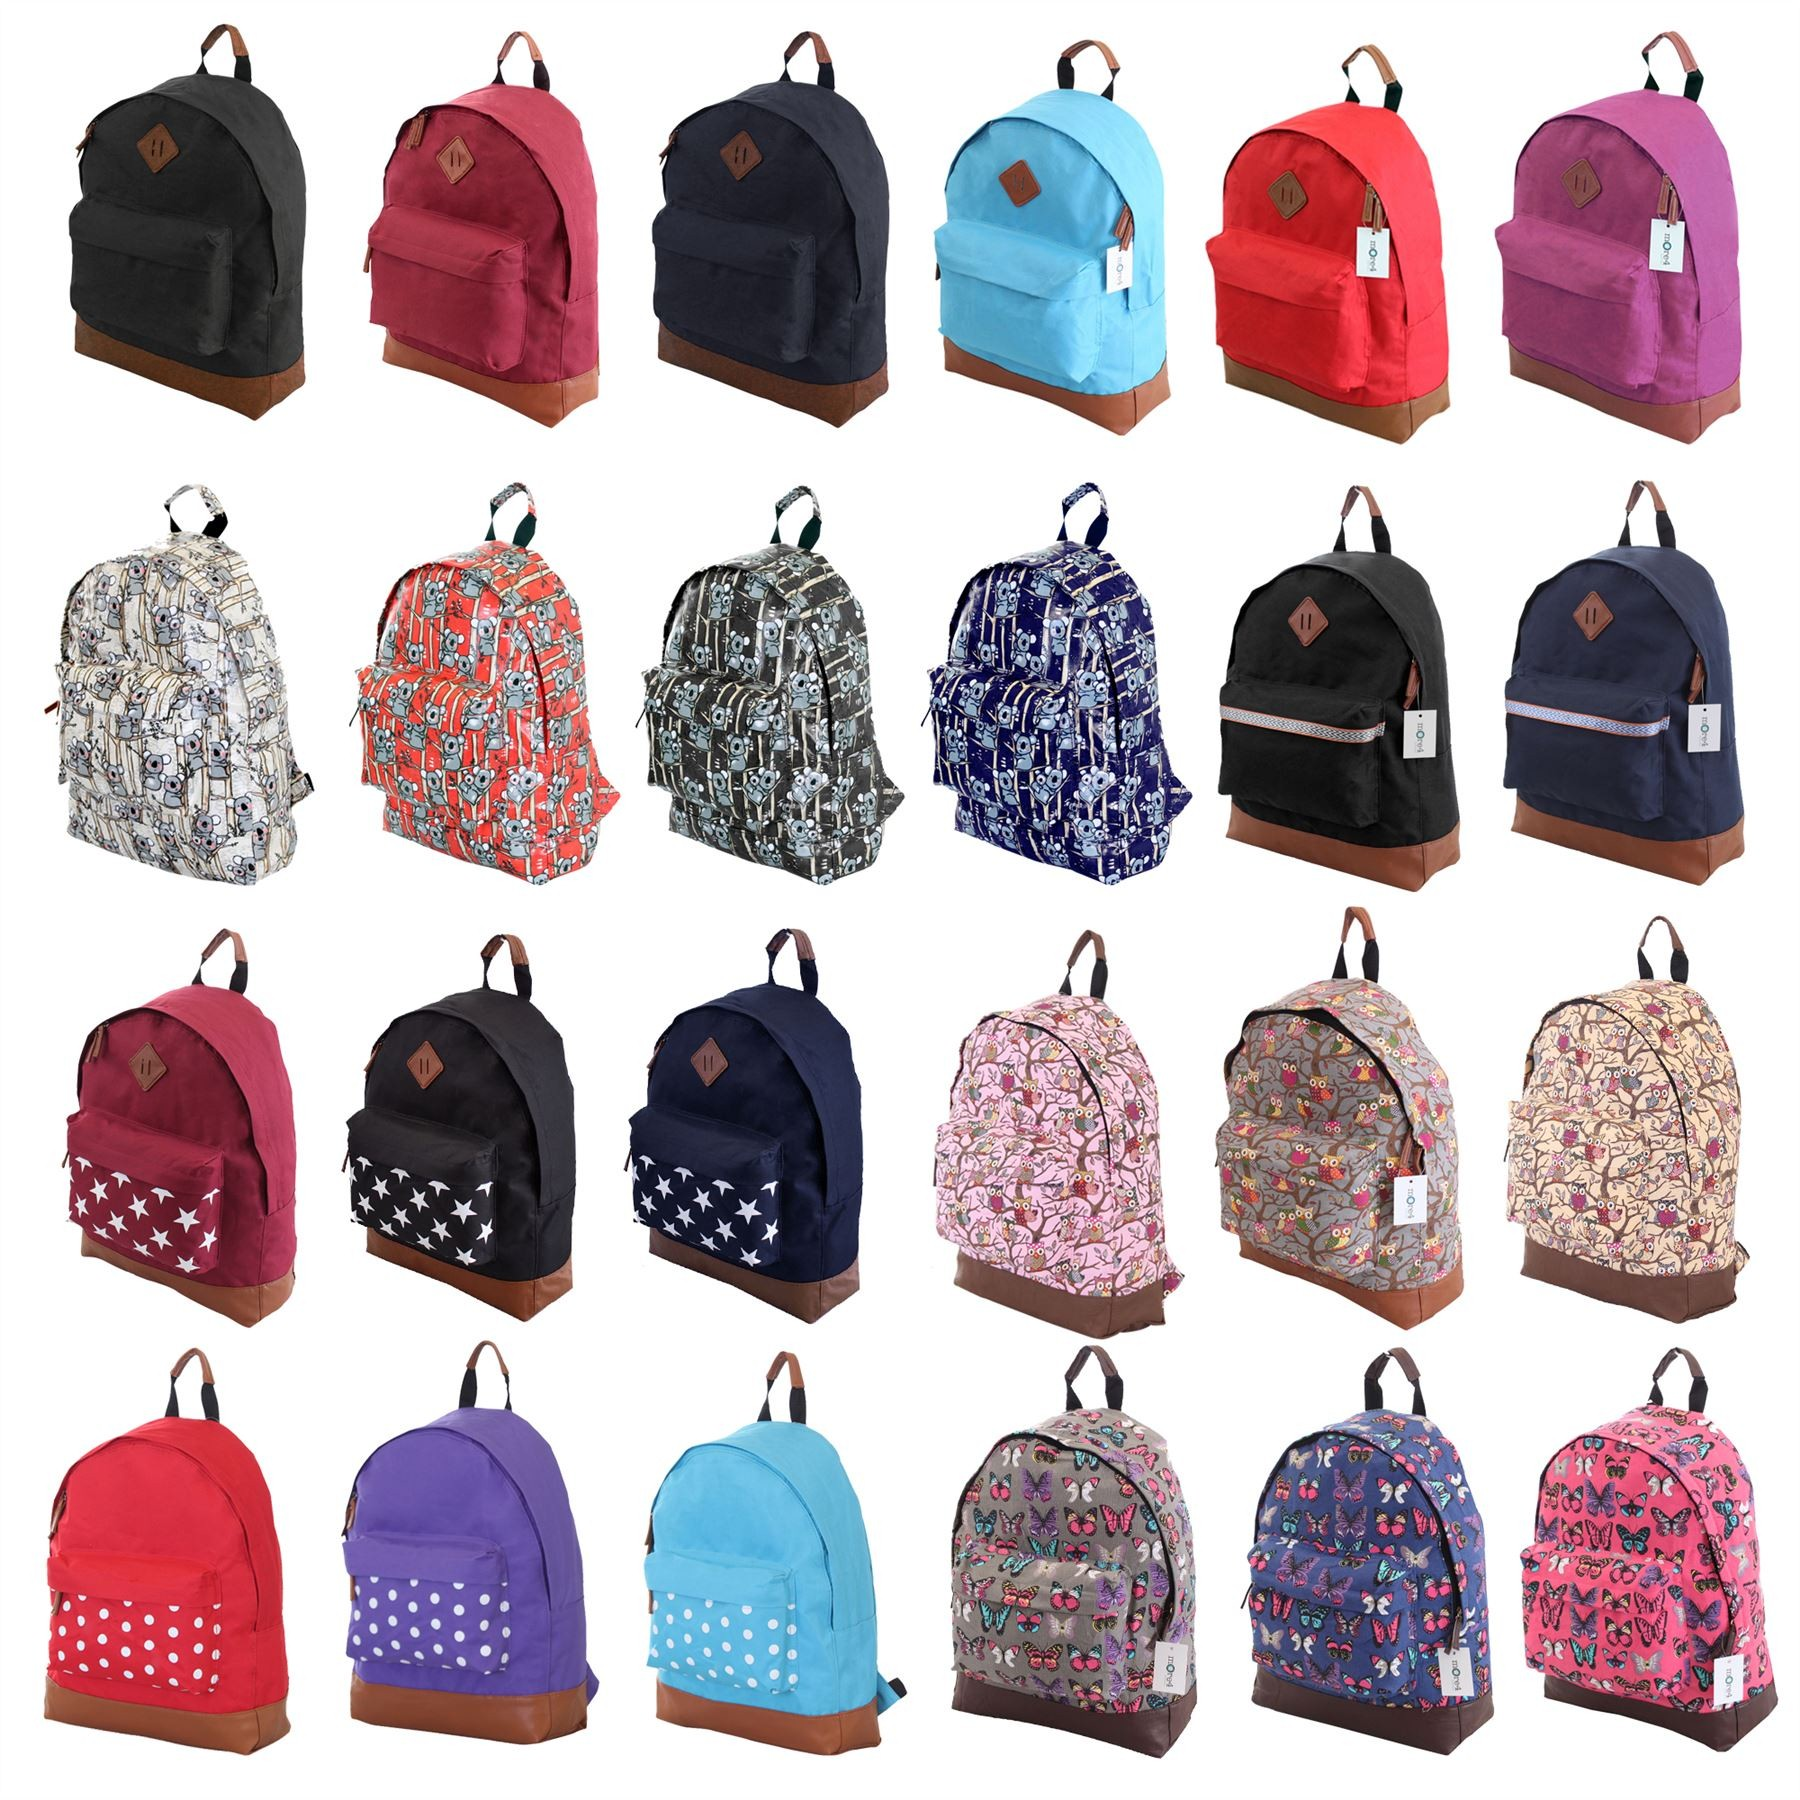 Backpack For High School Girl Nl8JjVmn